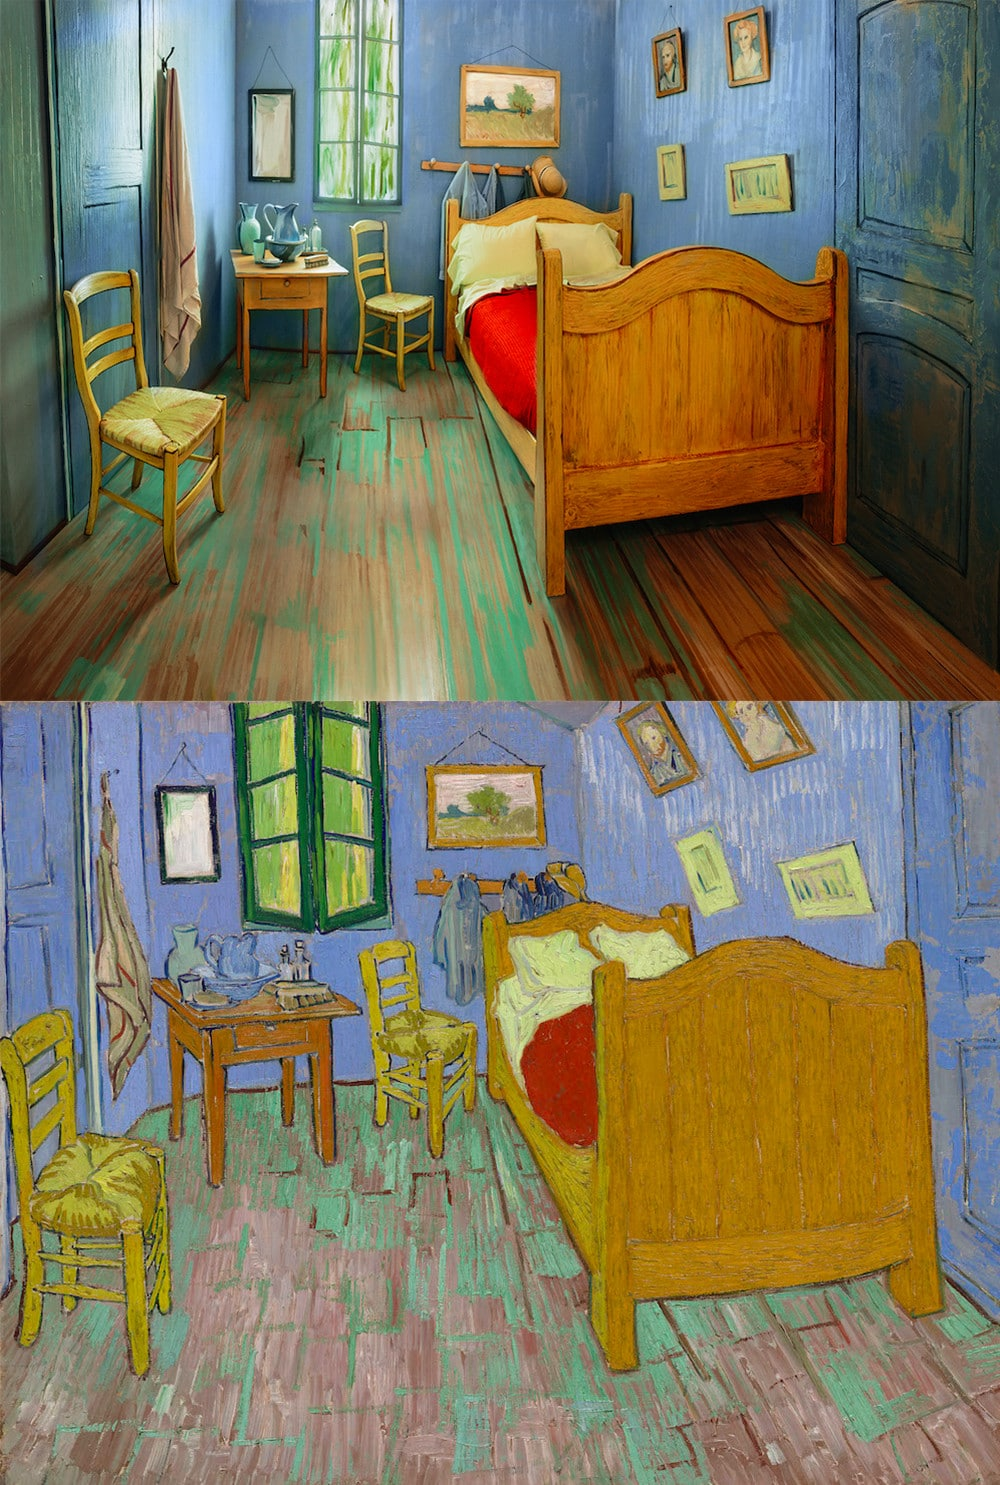 la chambre de van gogh d sormais en location sur airbnb. Black Bedroom Furniture Sets. Home Design Ideas